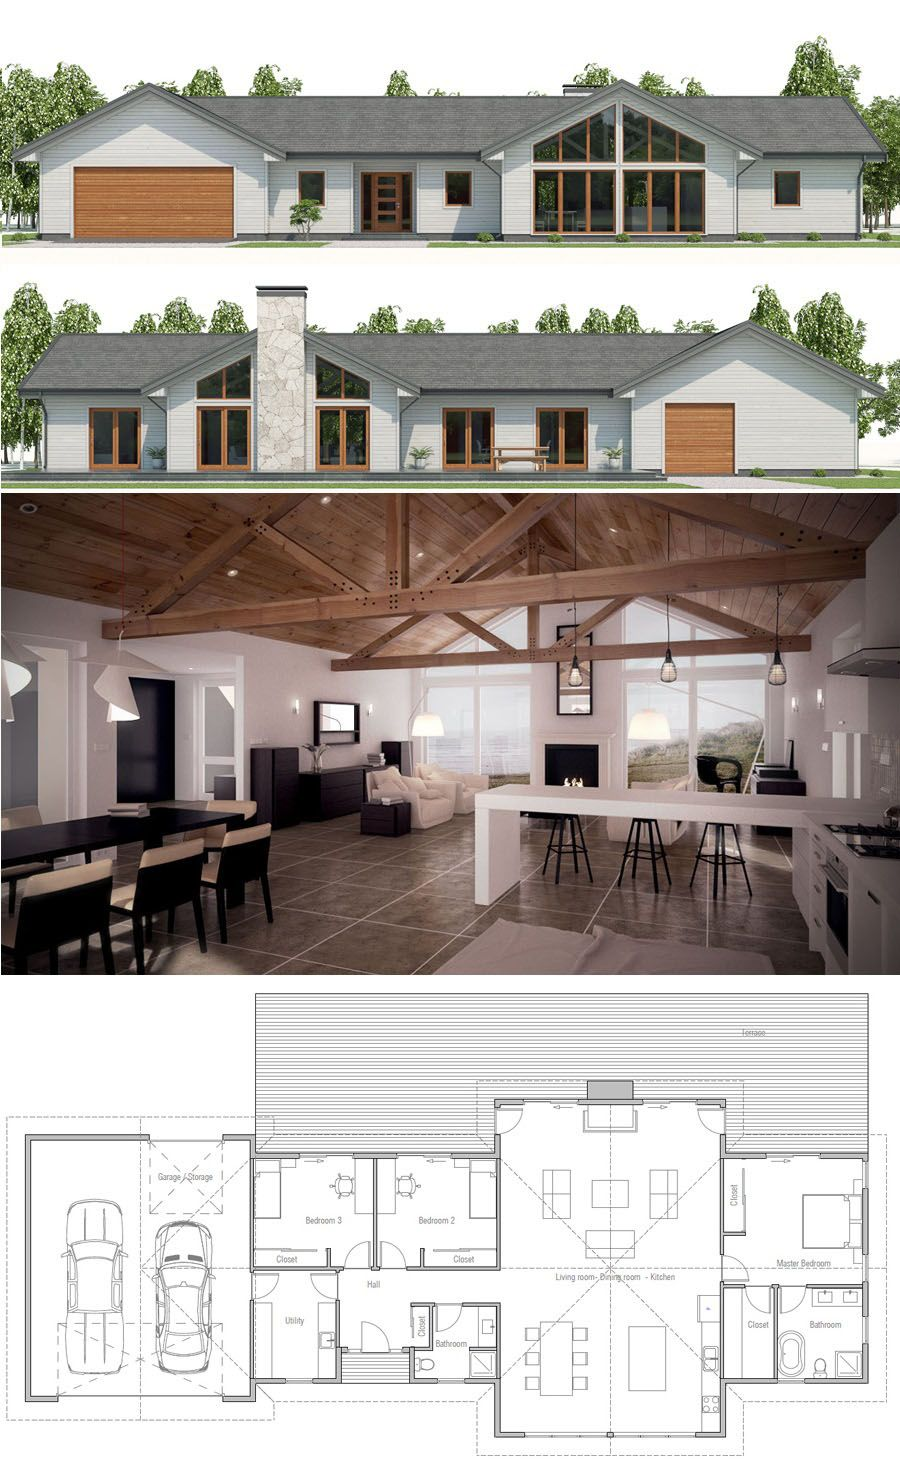 Modern farmhouse plan eliminate the extra rooms between garage and living space morton also rh pinterest